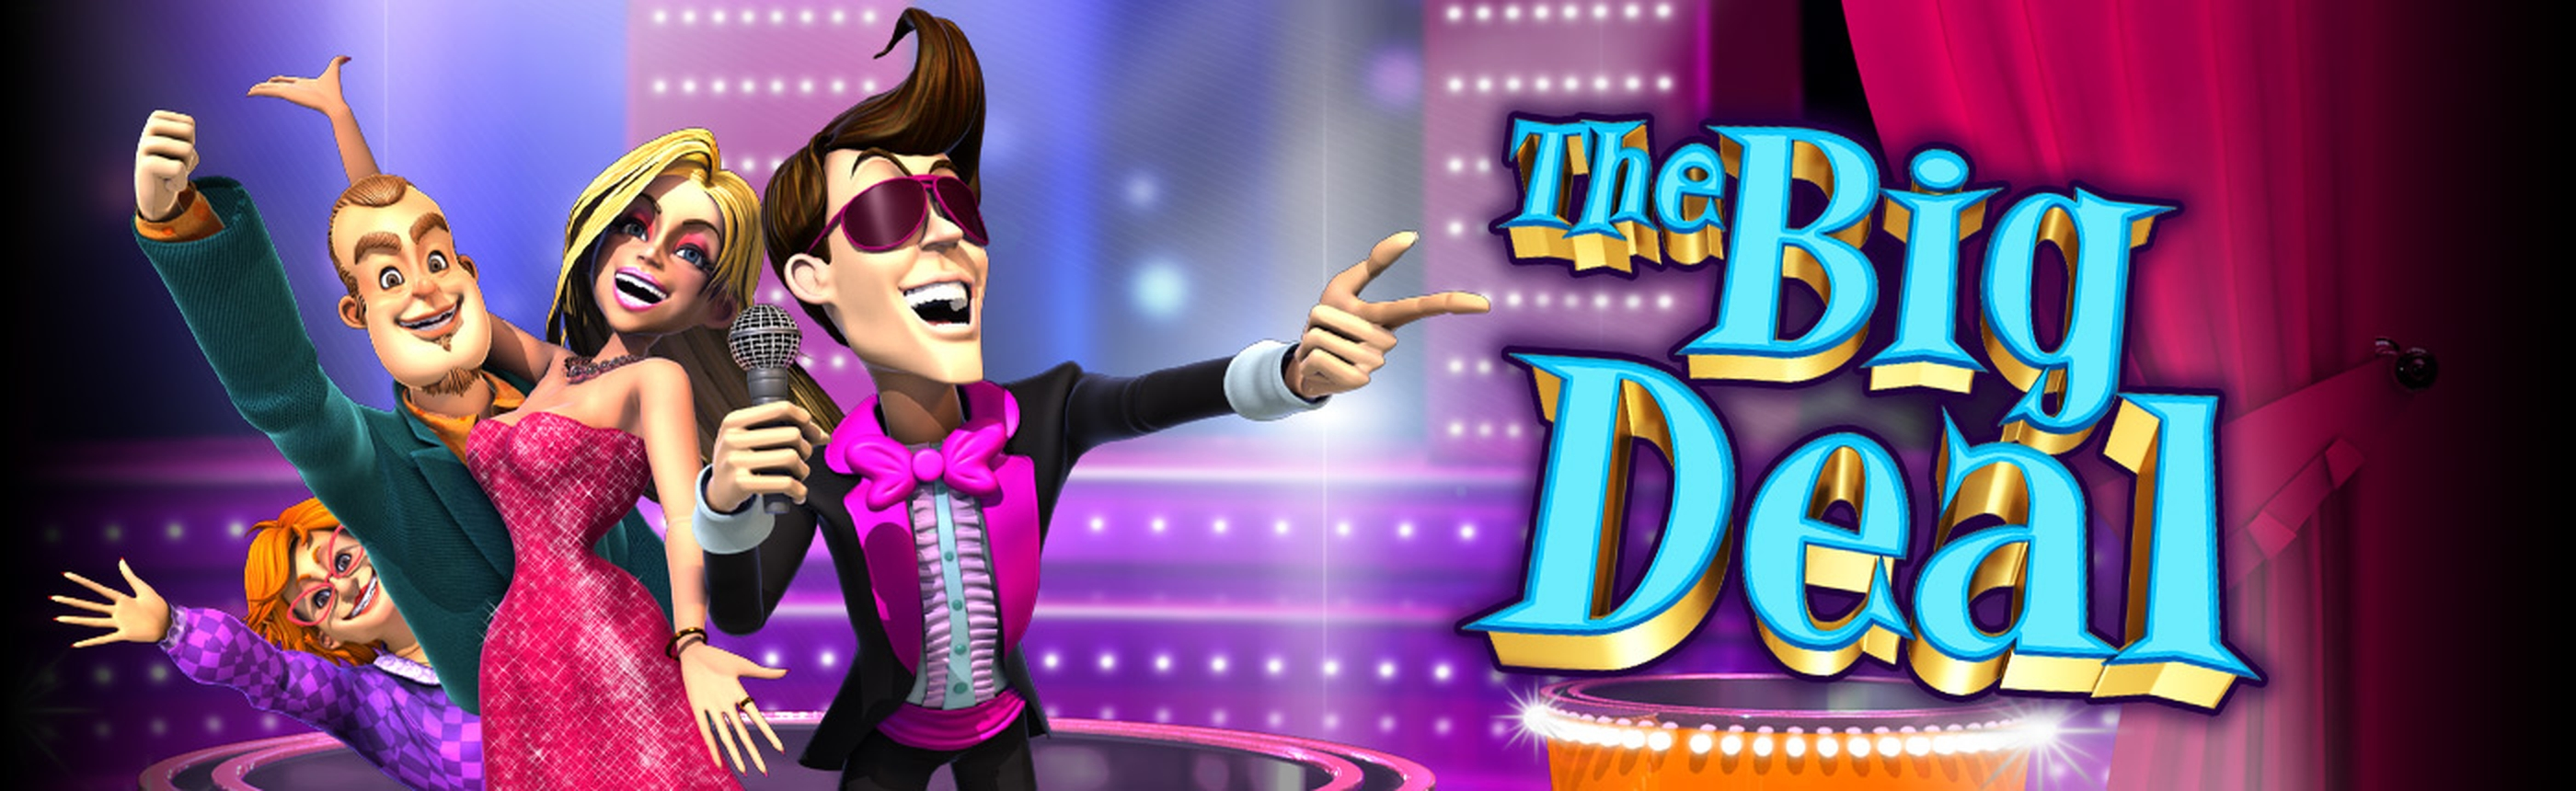 The The Big Deal (Revolver) Online Slot Demo Game by Revolver Gaming